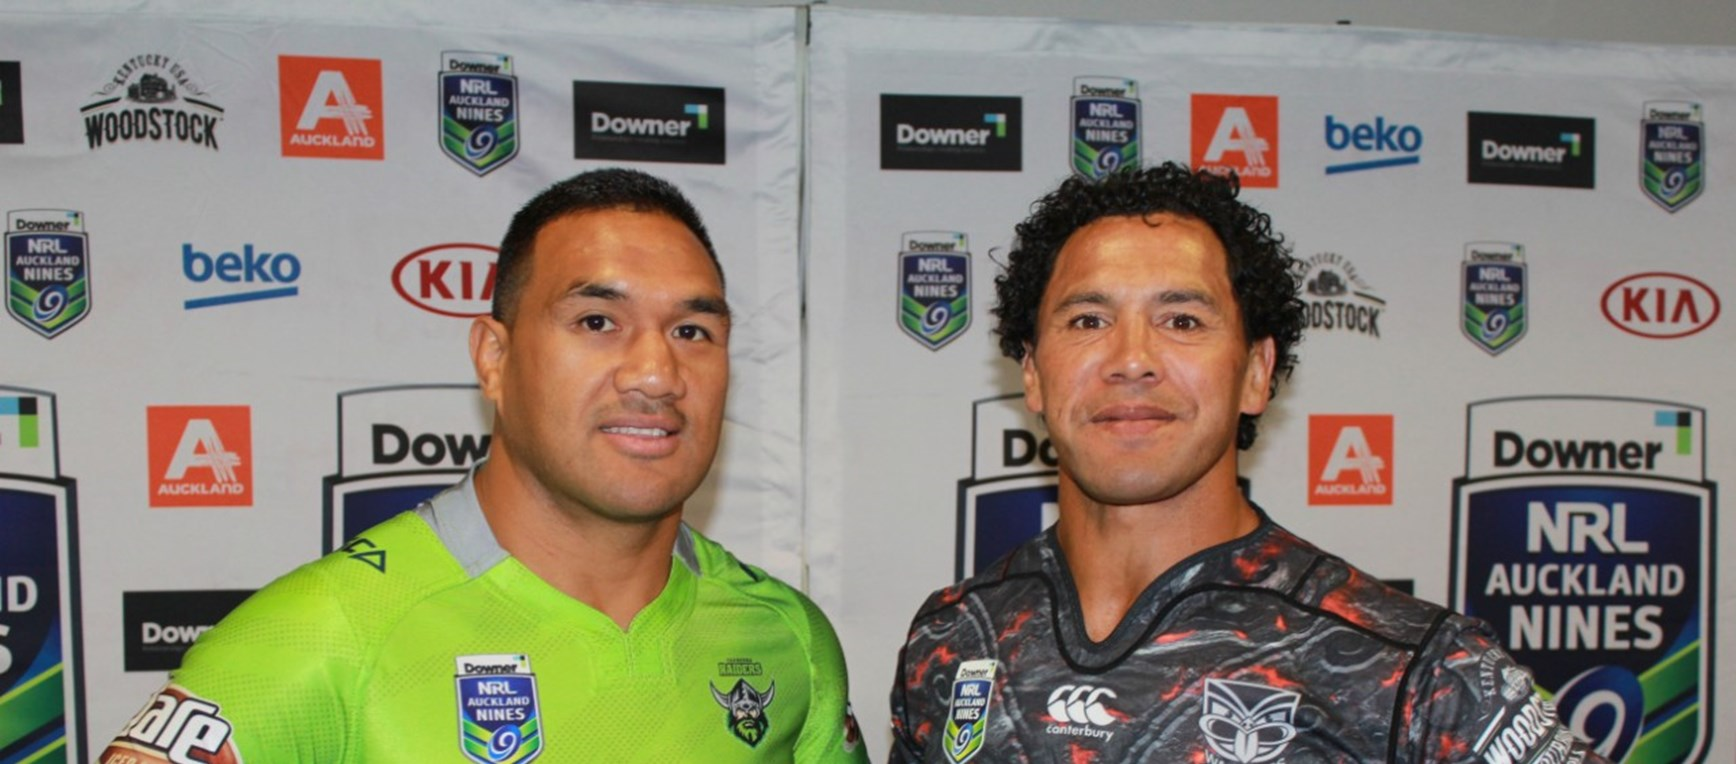 Auckland Nines: Captain's call and fan day